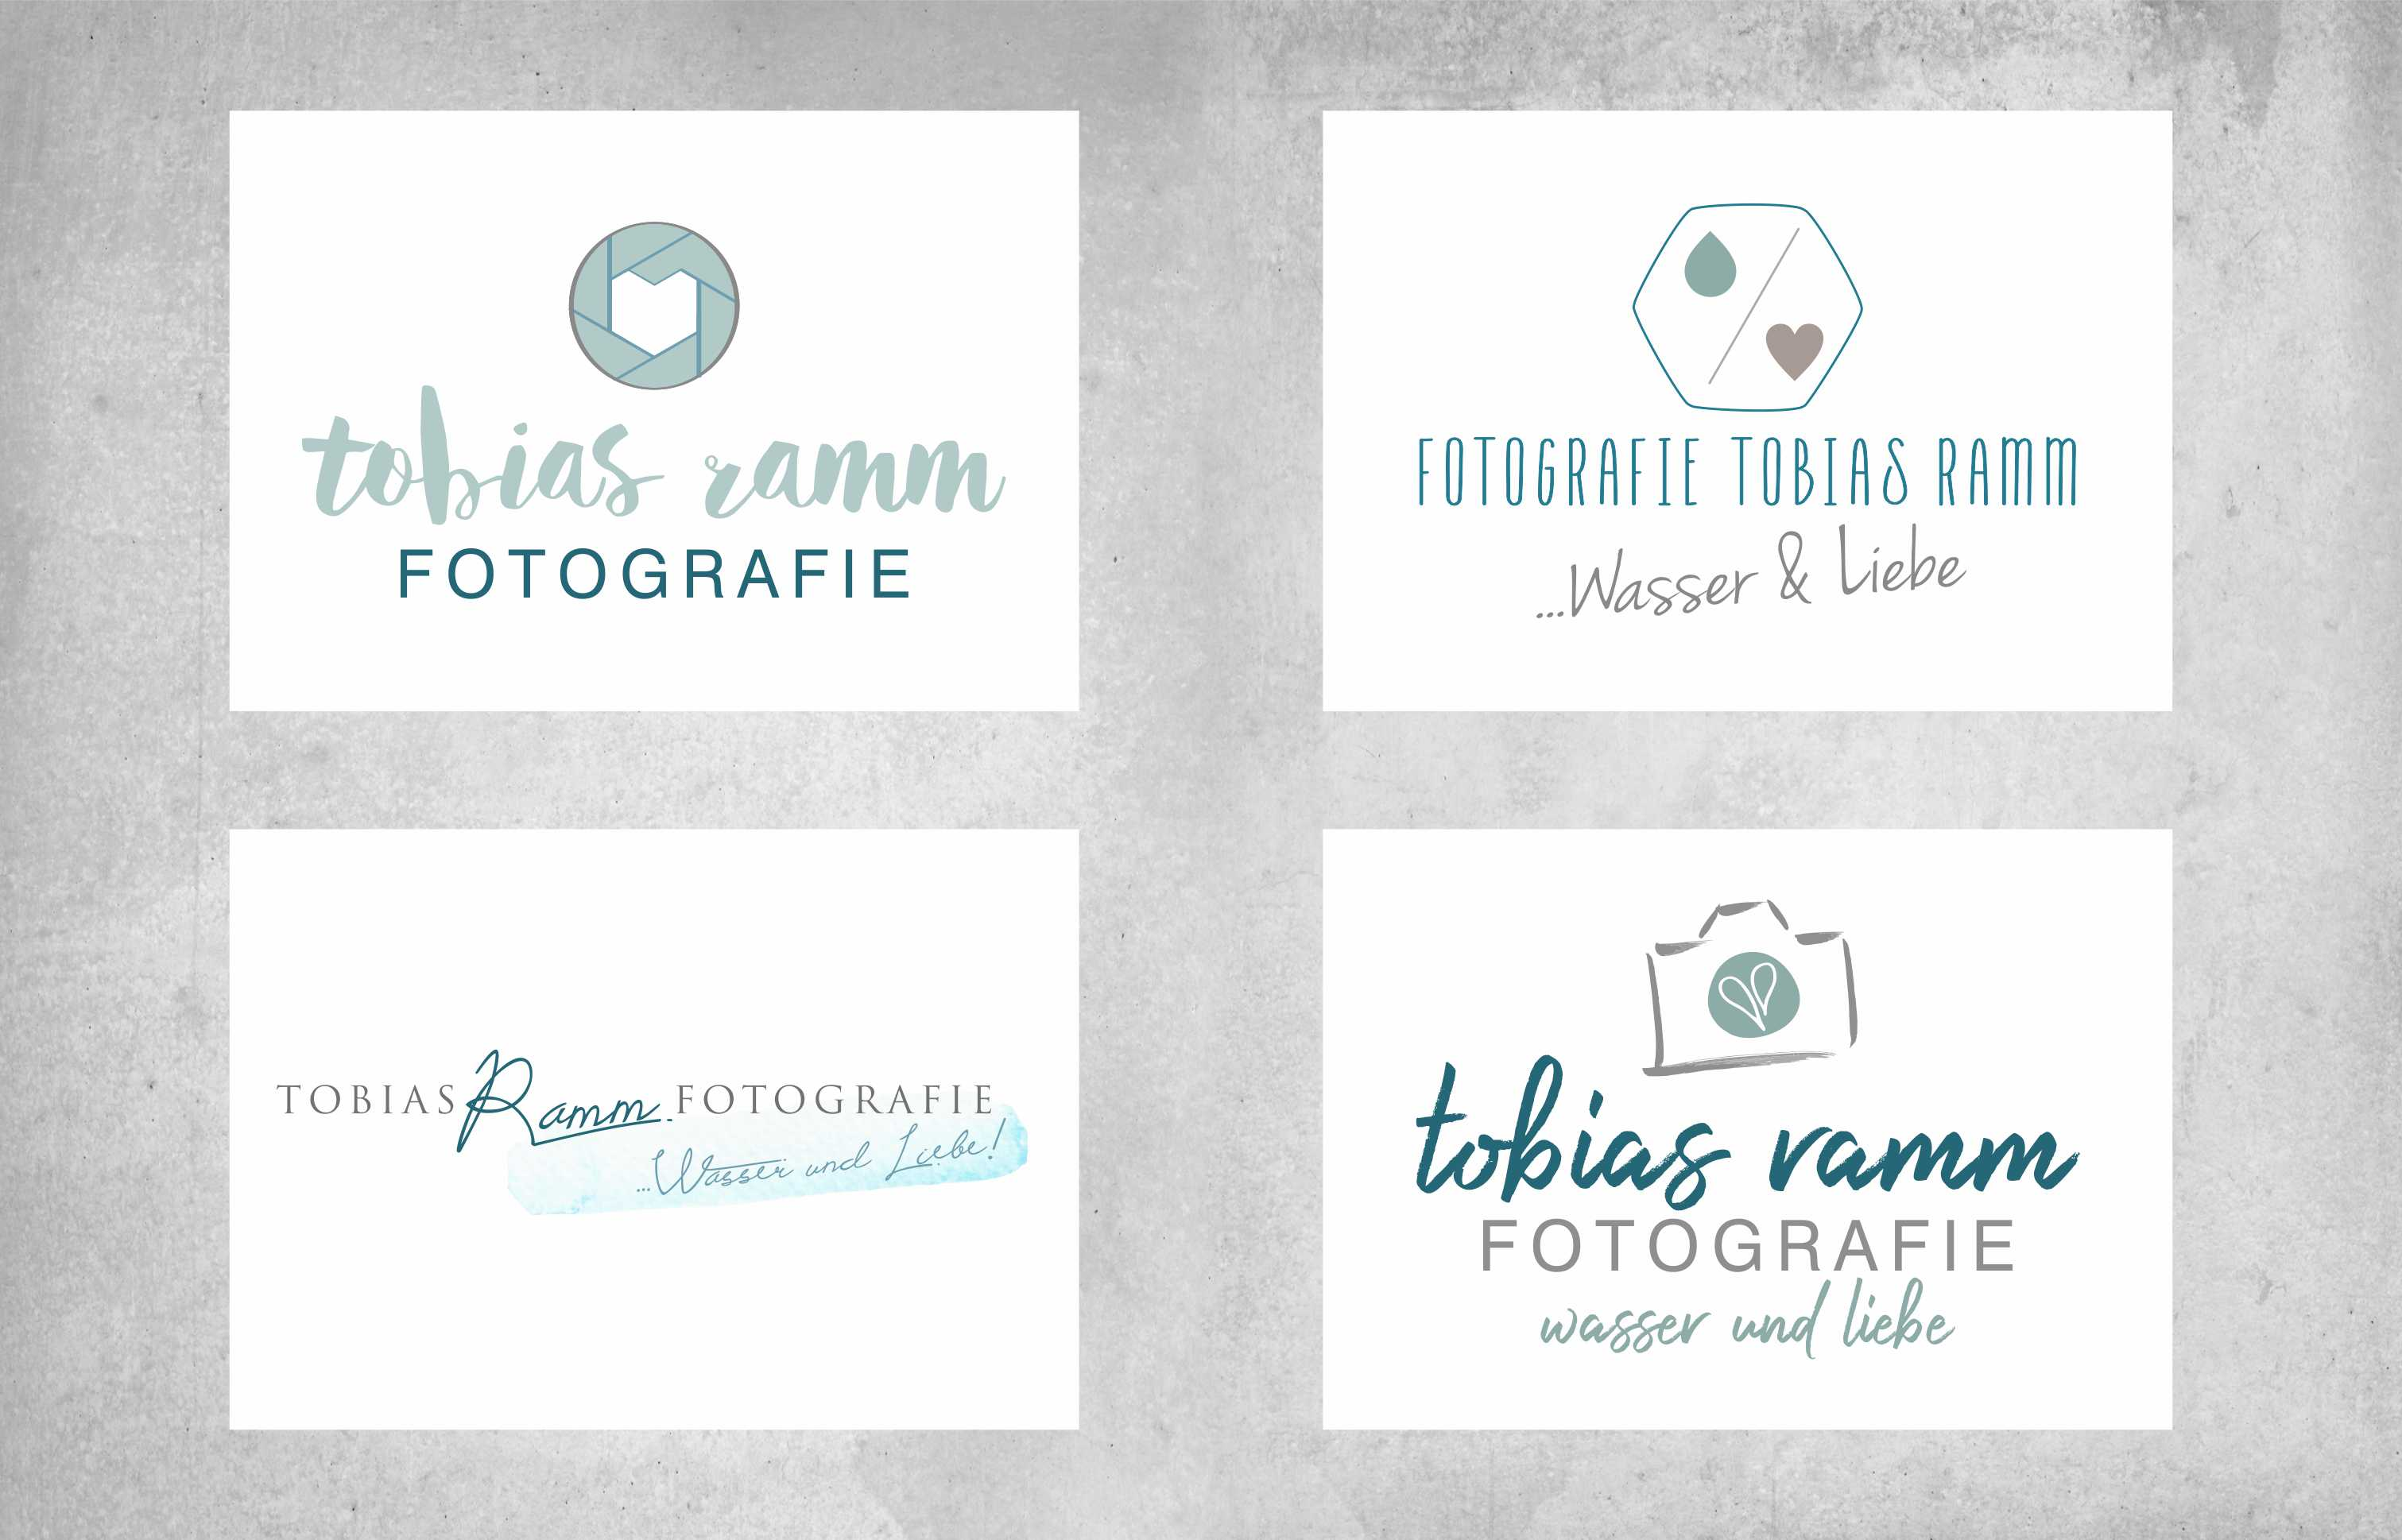 Portfolio Fotografie Tobias Ramm Logodesign Corporate Design Logoentwürfe all2design Laura Friedrich